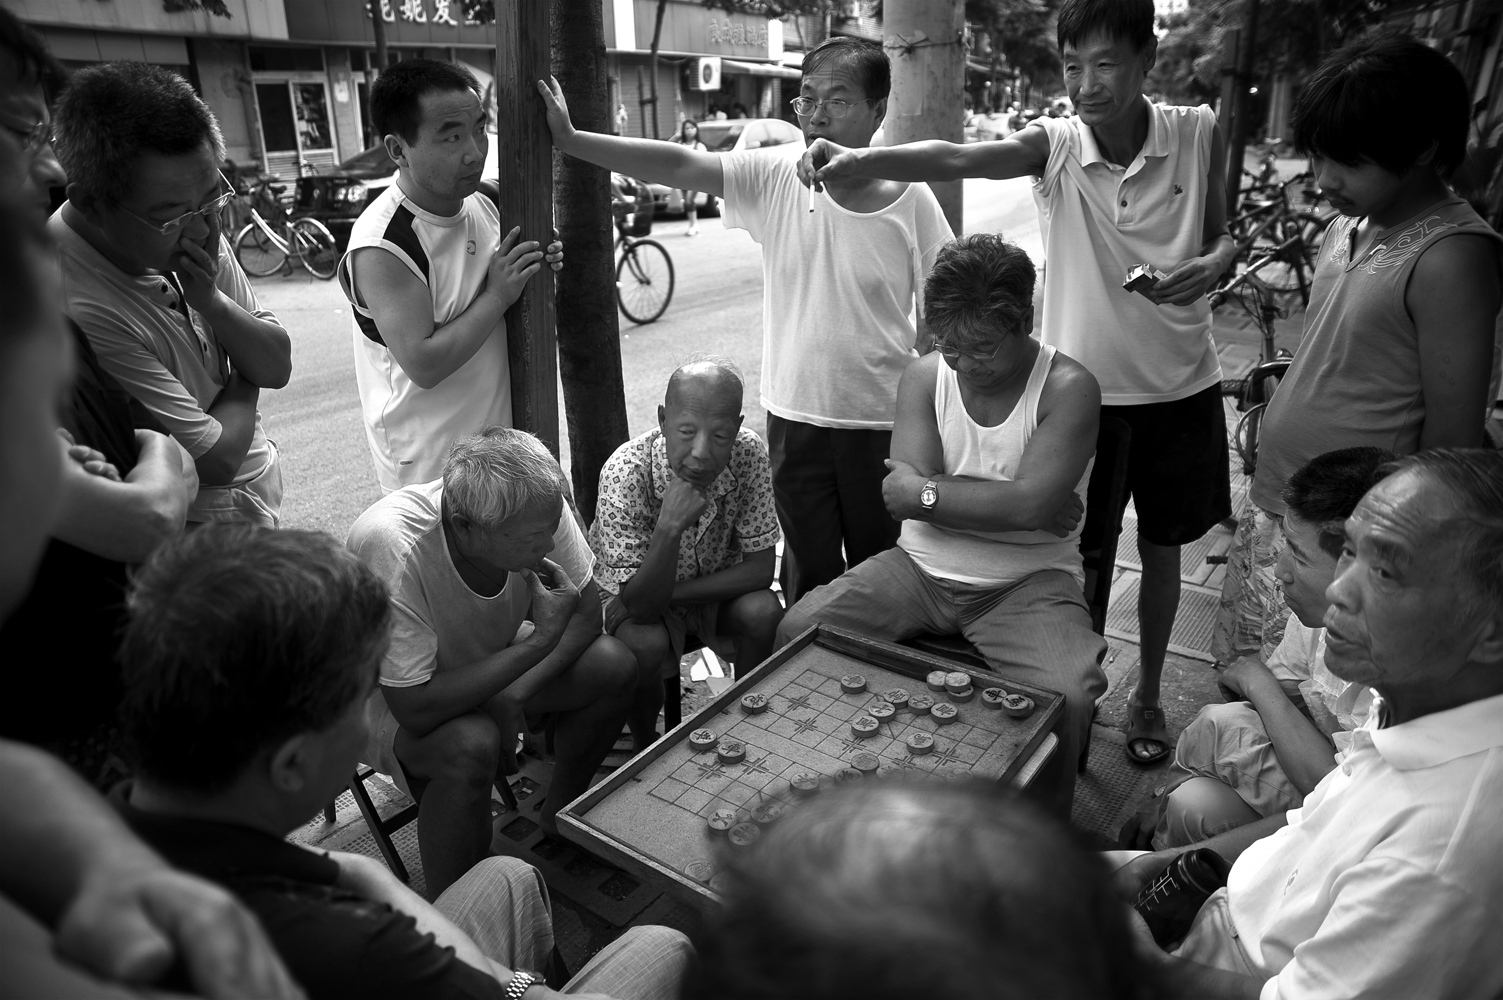 Citizens are most of the time on the street, where they also they spend leisure, sports or relaxation. Typical street huddle around a board game.